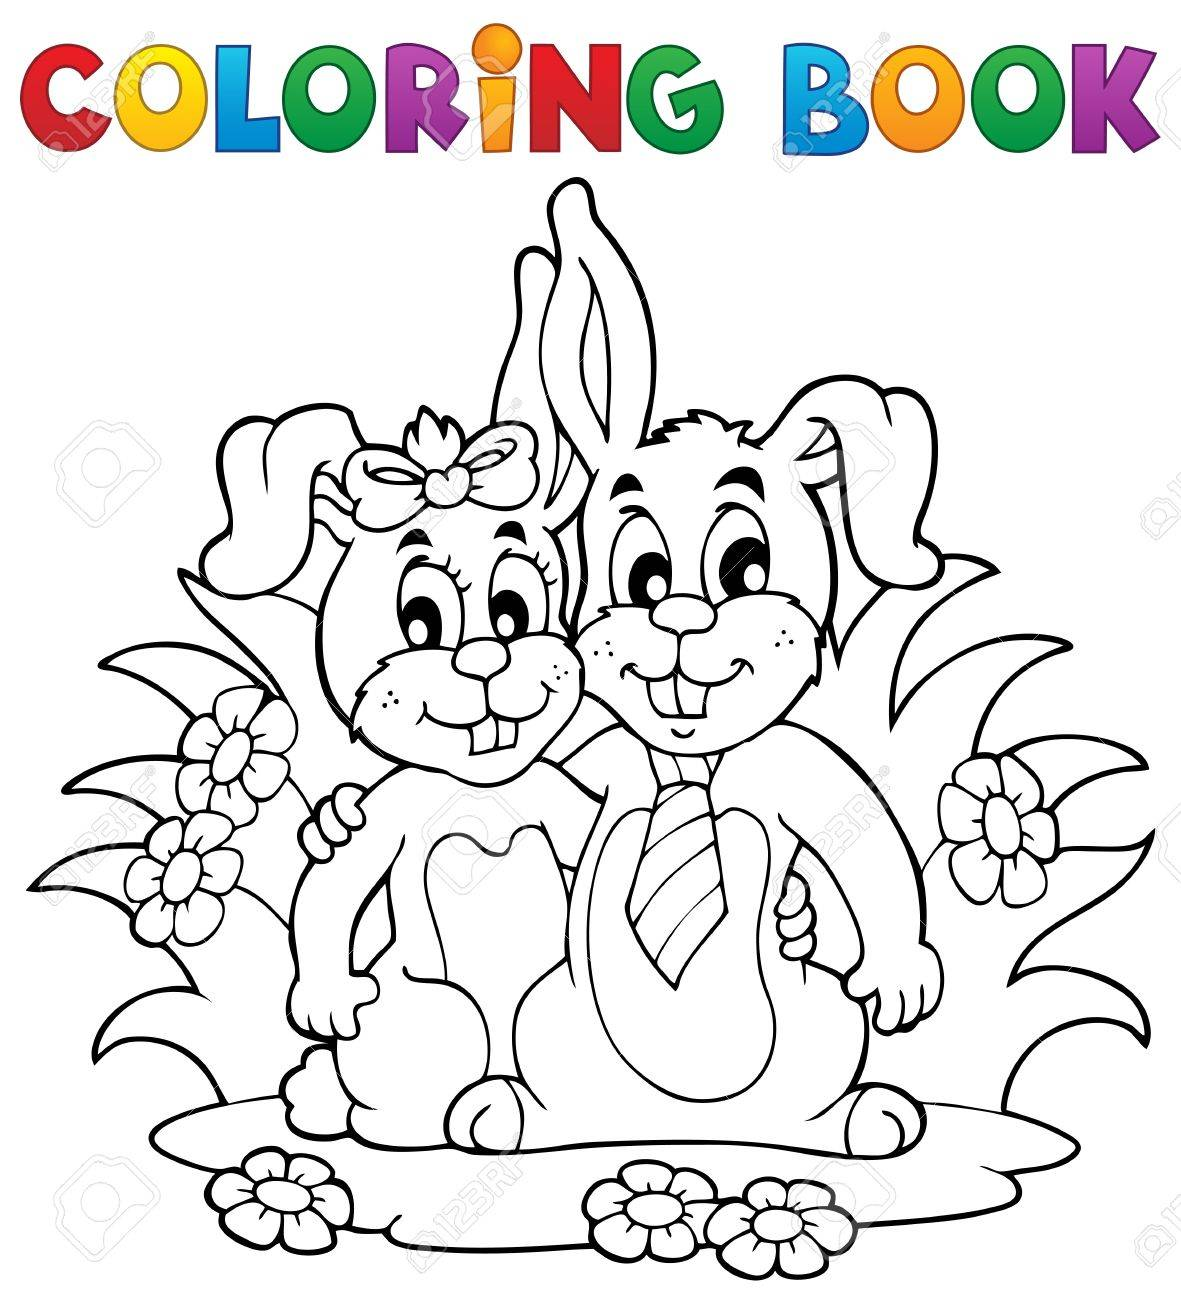 coloring book rabbit pictures : Coloring Book Rabbit Theme 2 Vector Illustration Stock Vector 17368274